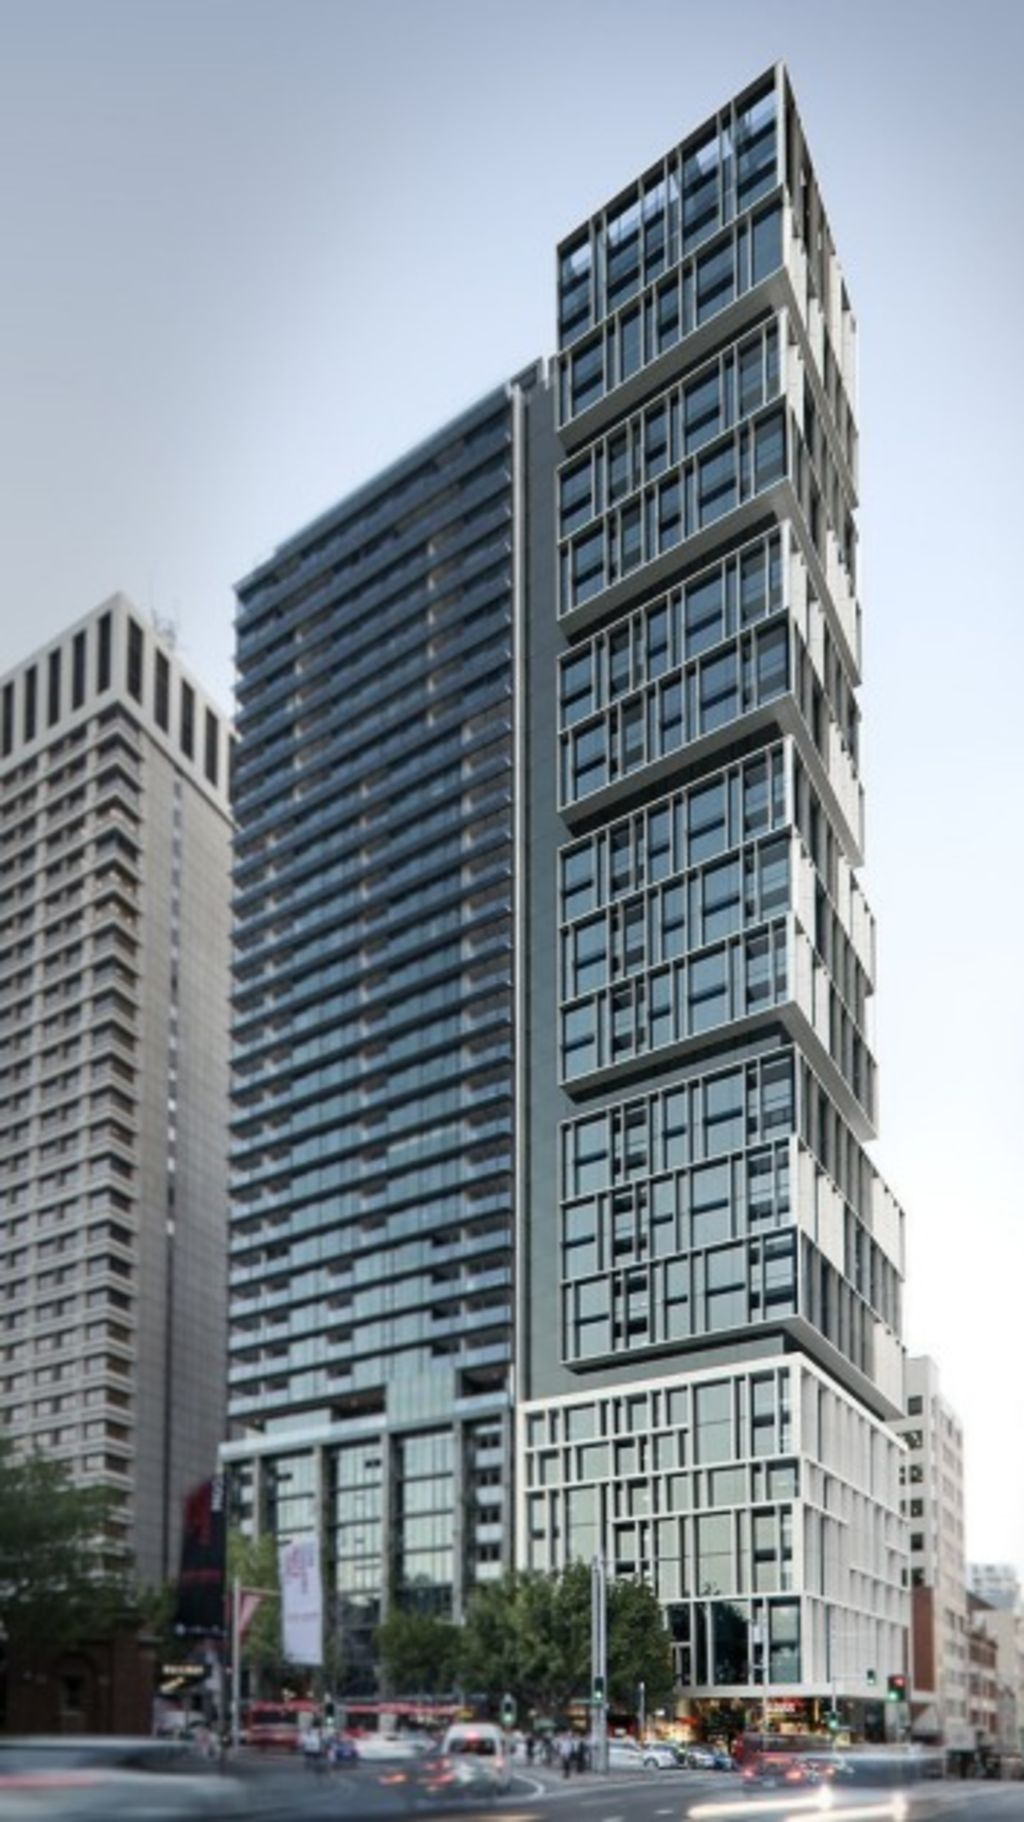 An artist's impression of the winning design by Bates Smart for 130 Elizabeth Street, opposite Hyde Park. Photo: domain.com.au